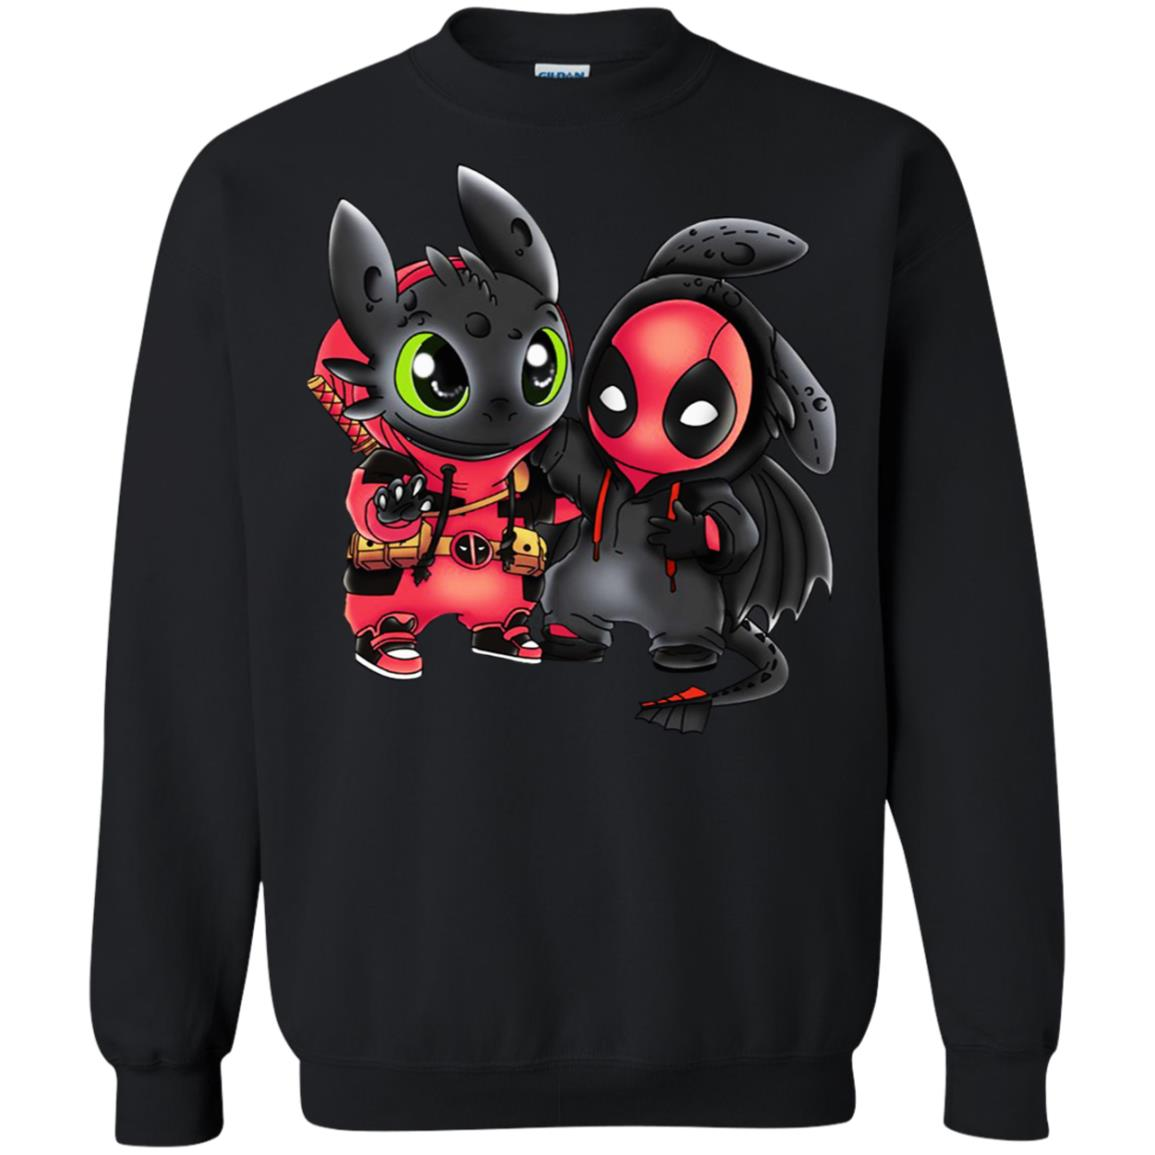 Toothless and Deadpool